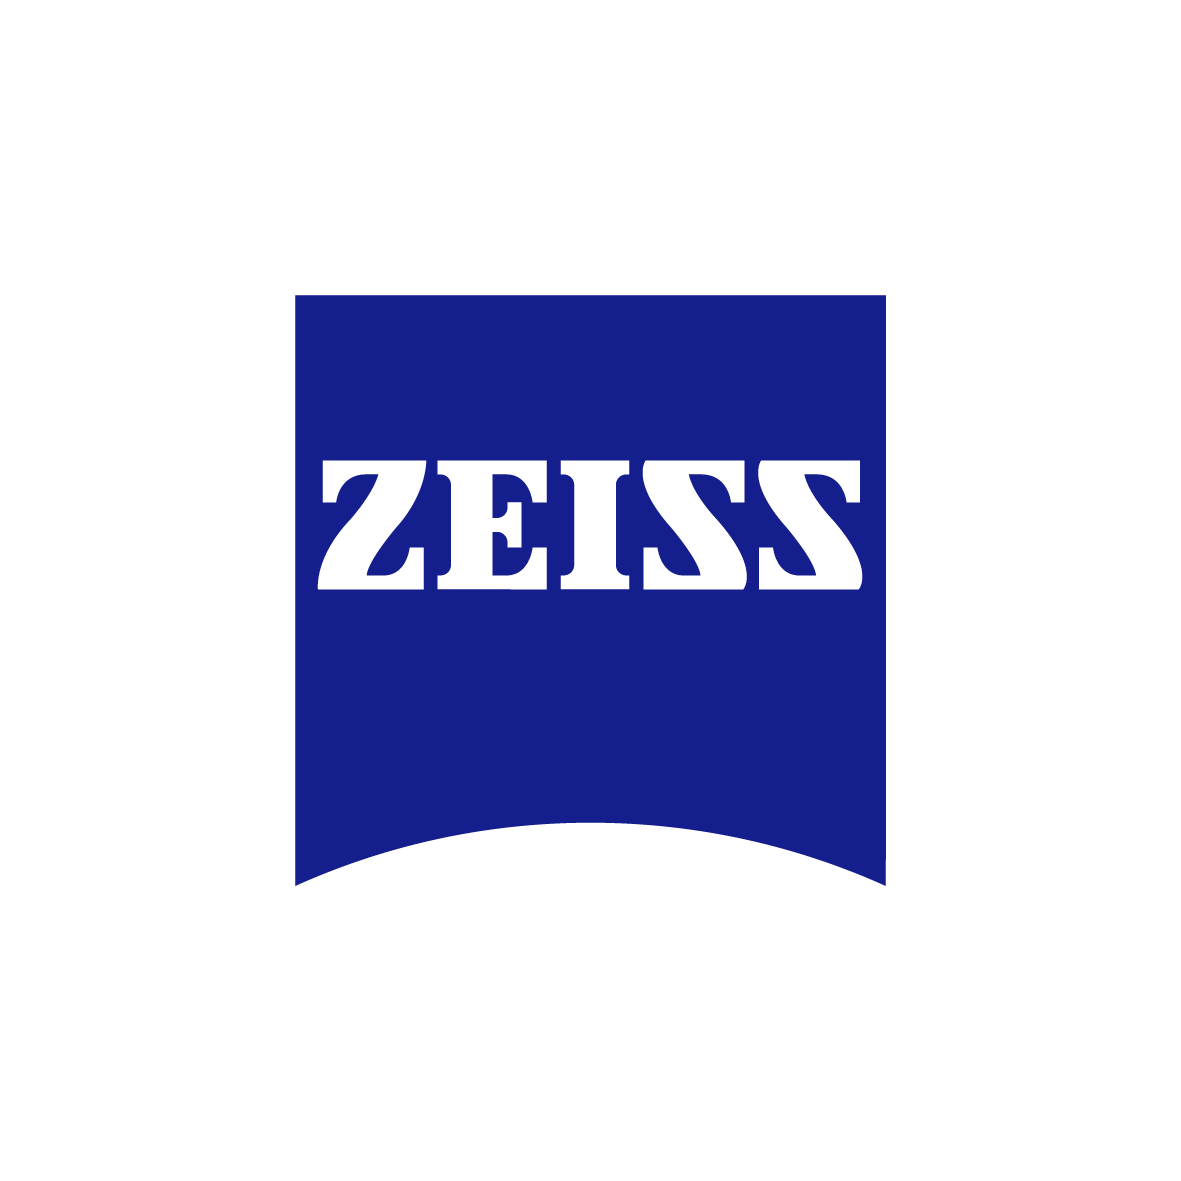 Zeiss Products